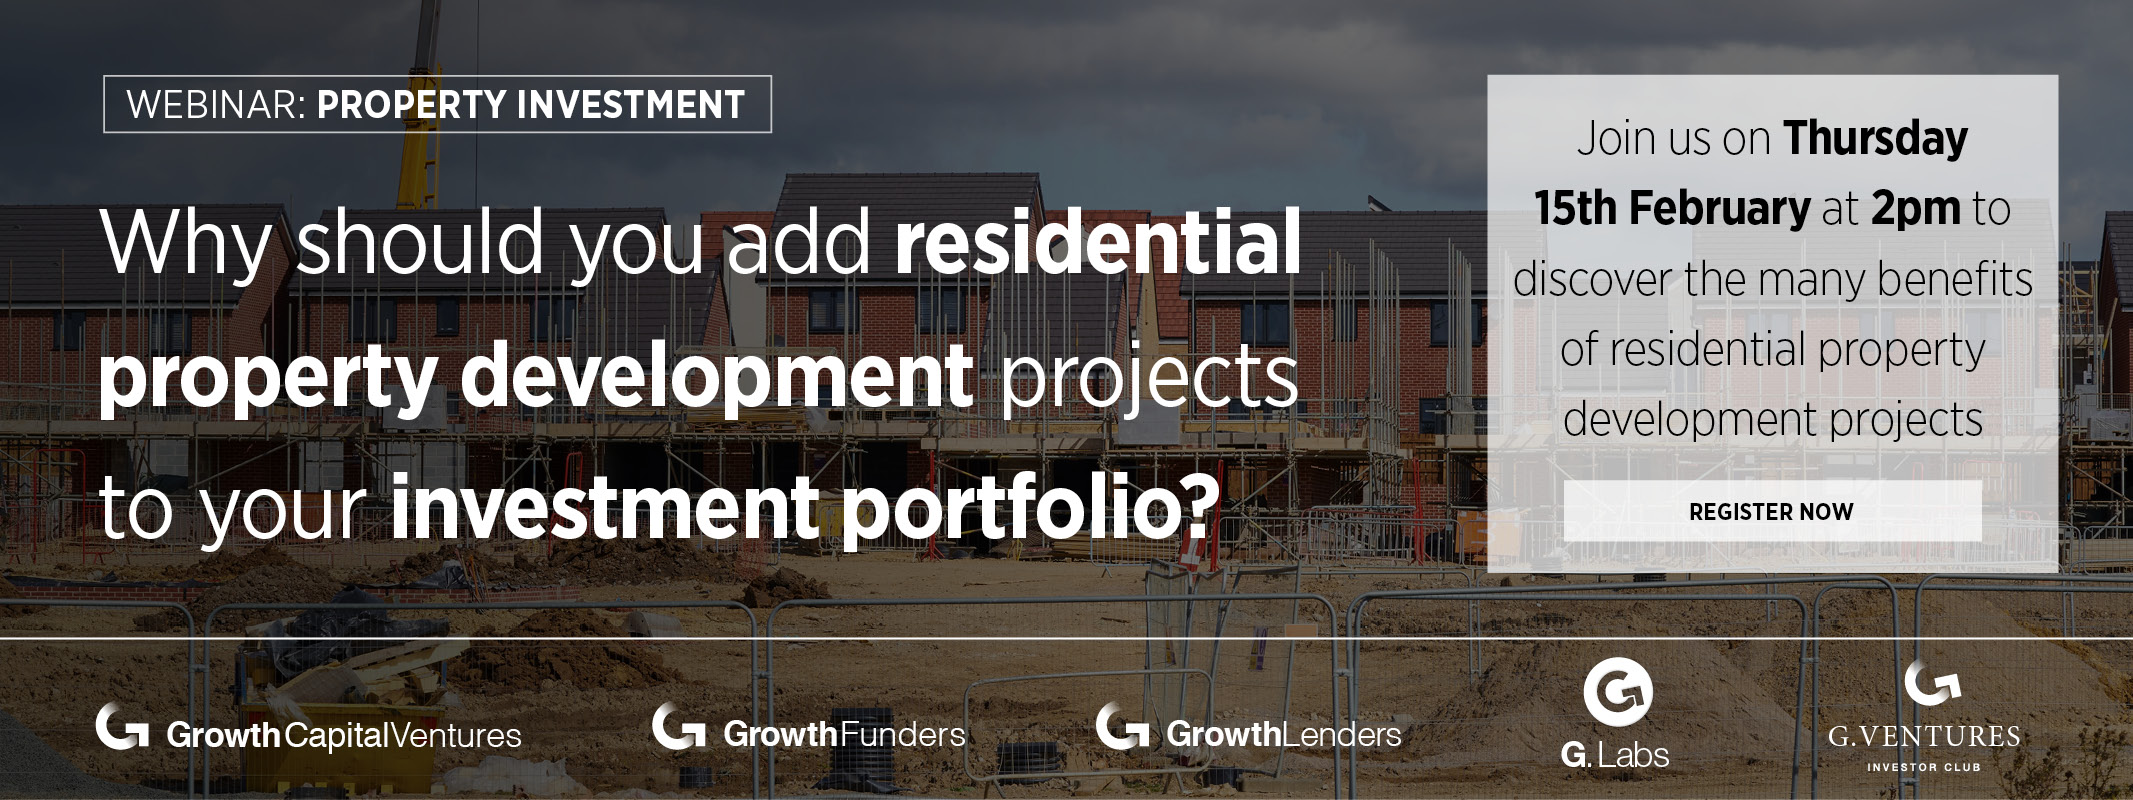 [webinar] Why should you add residential property development projects to your investment portfolio?